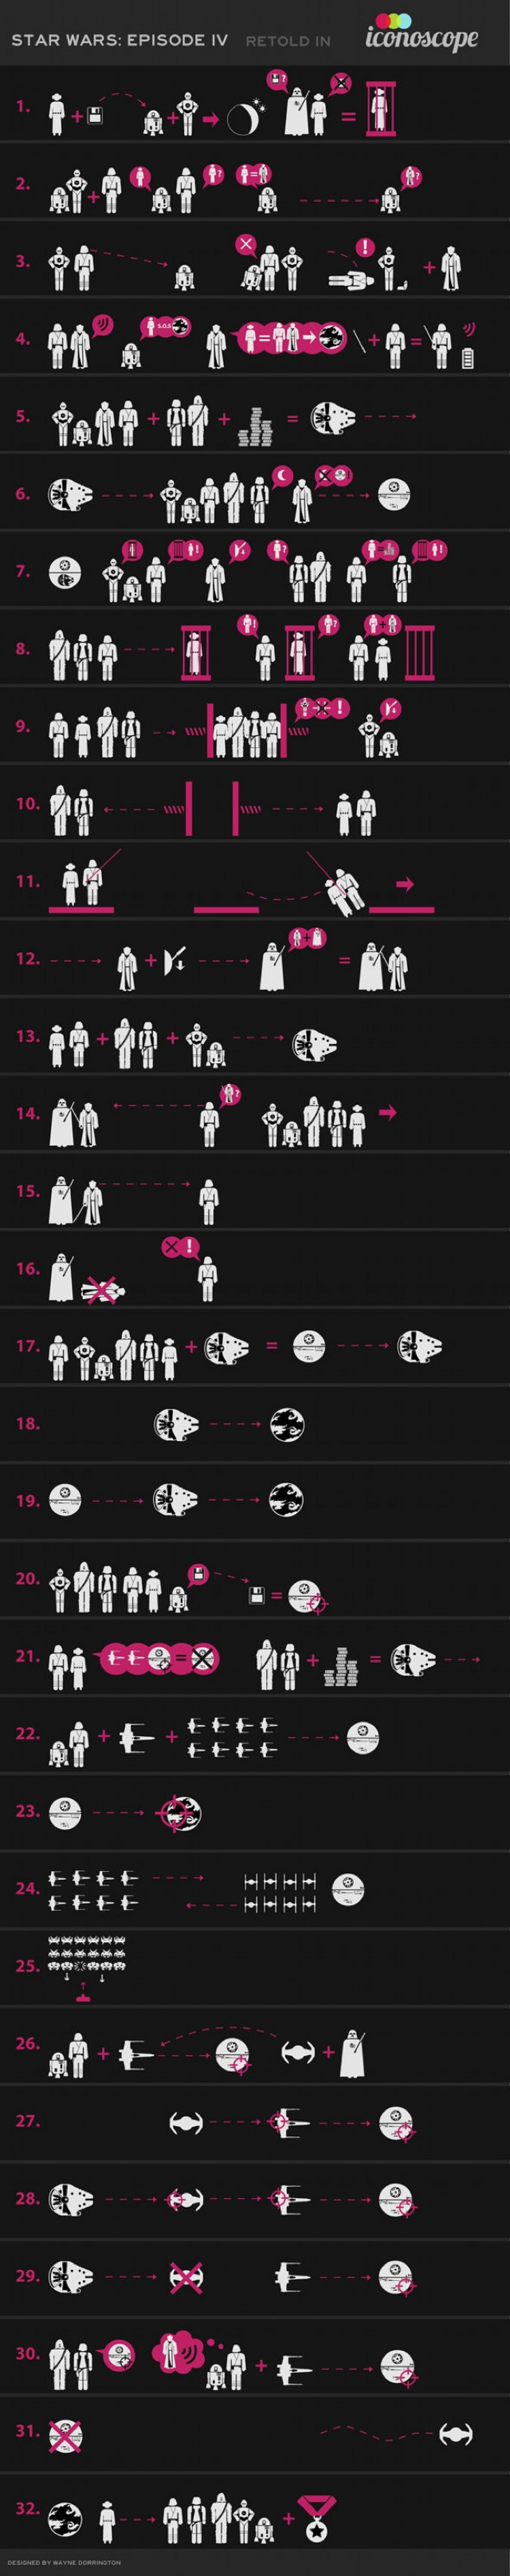 Star Wars Episode IV: As Told by Icons Infographic